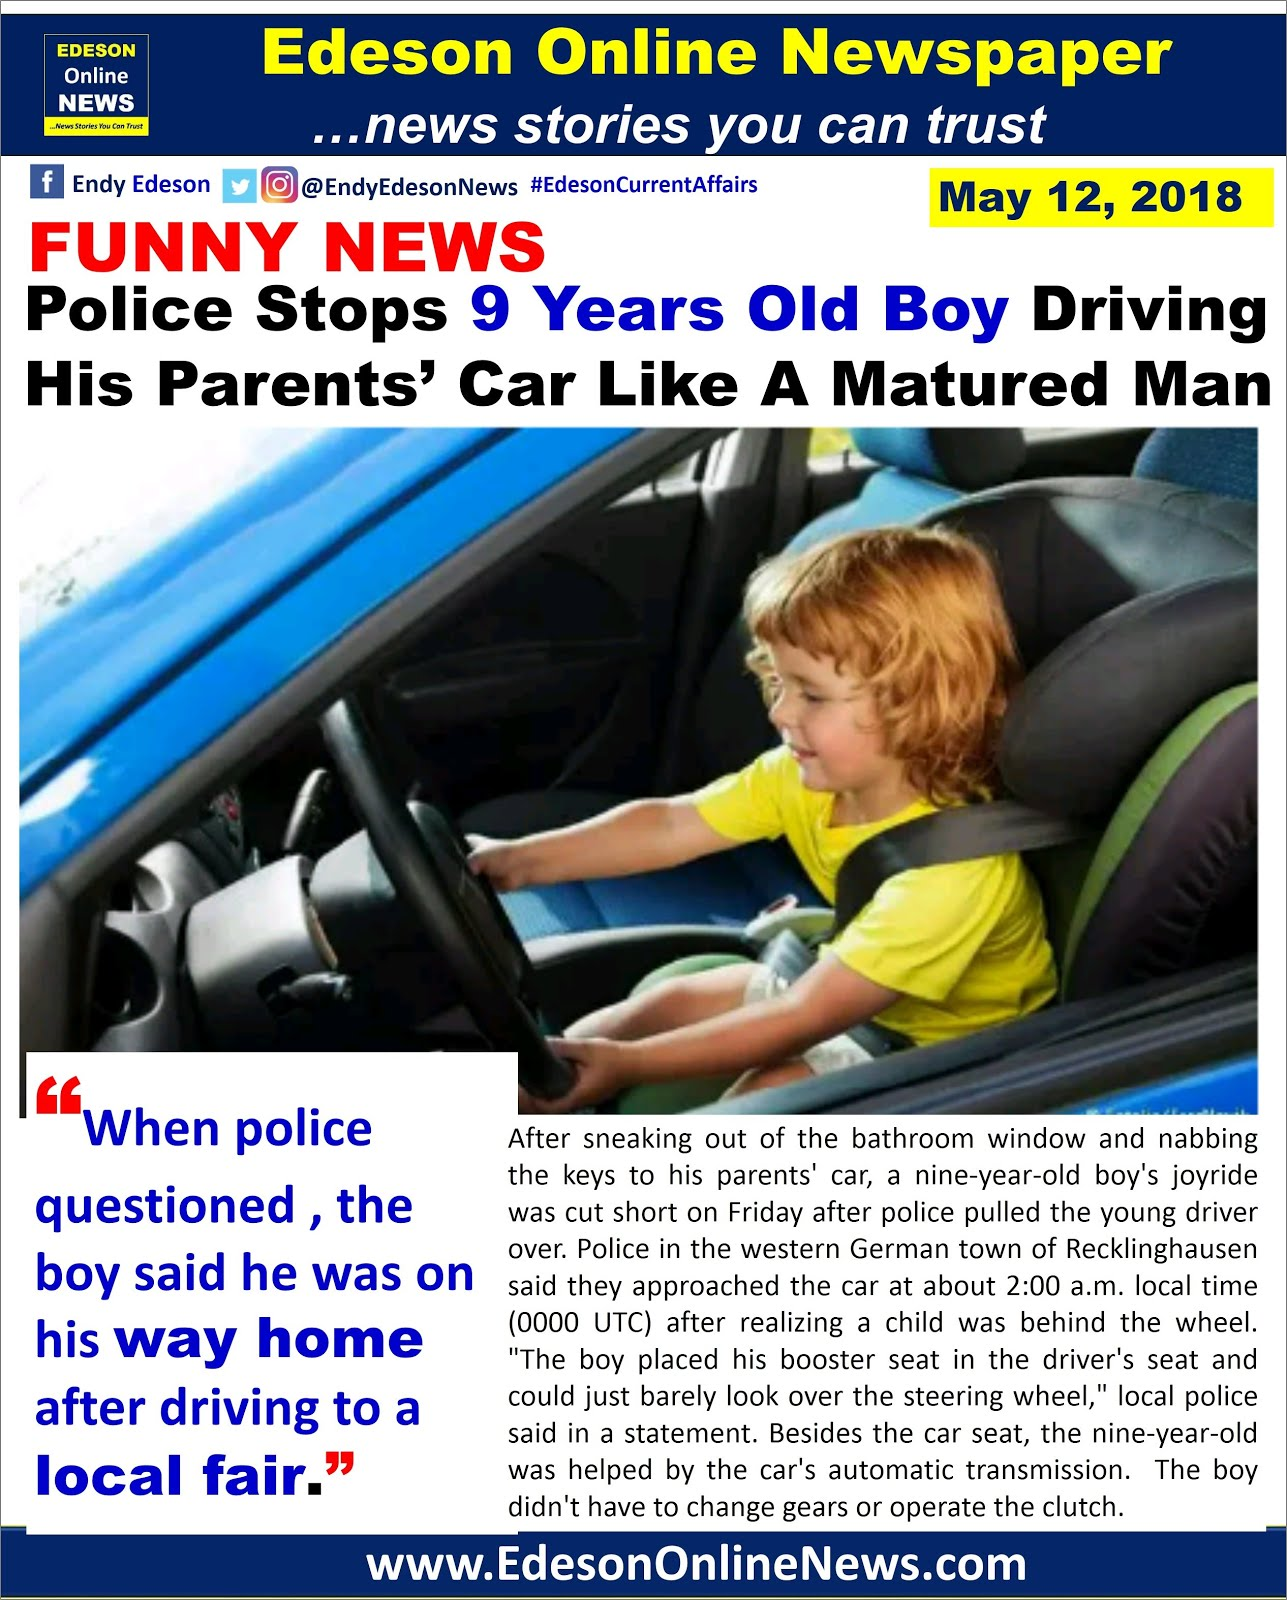 After Sneaking Out Of The Bathroom Window And Nabbing Keys To His Parents Car A Nine Year Old Boys Joyride Was Cut Short On Friday Police